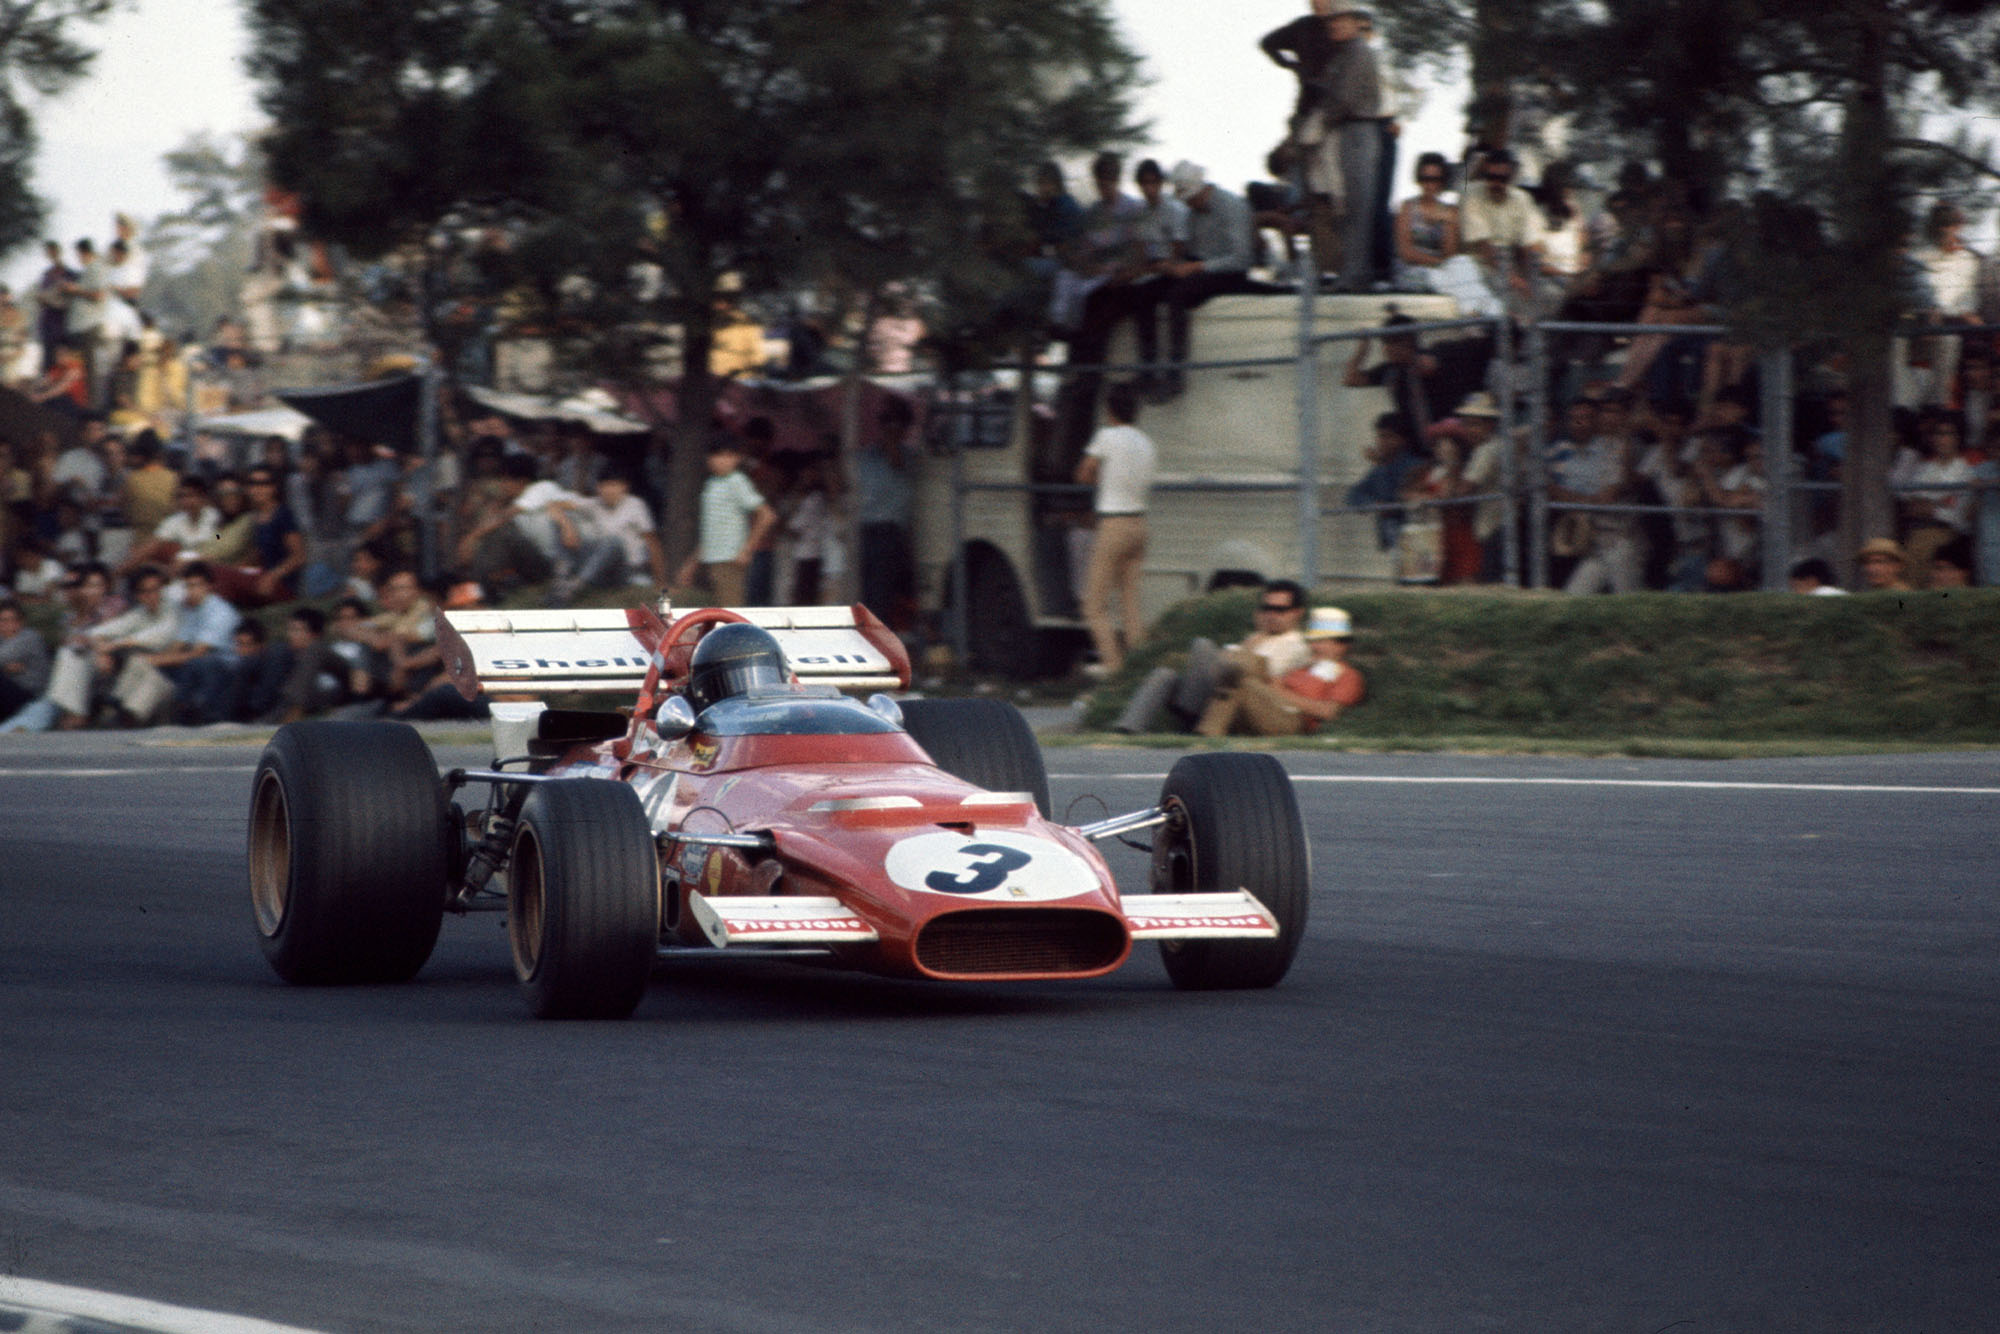 Jacky Ickx driving for Ferrari at the 1970 Mexican Grand Prix